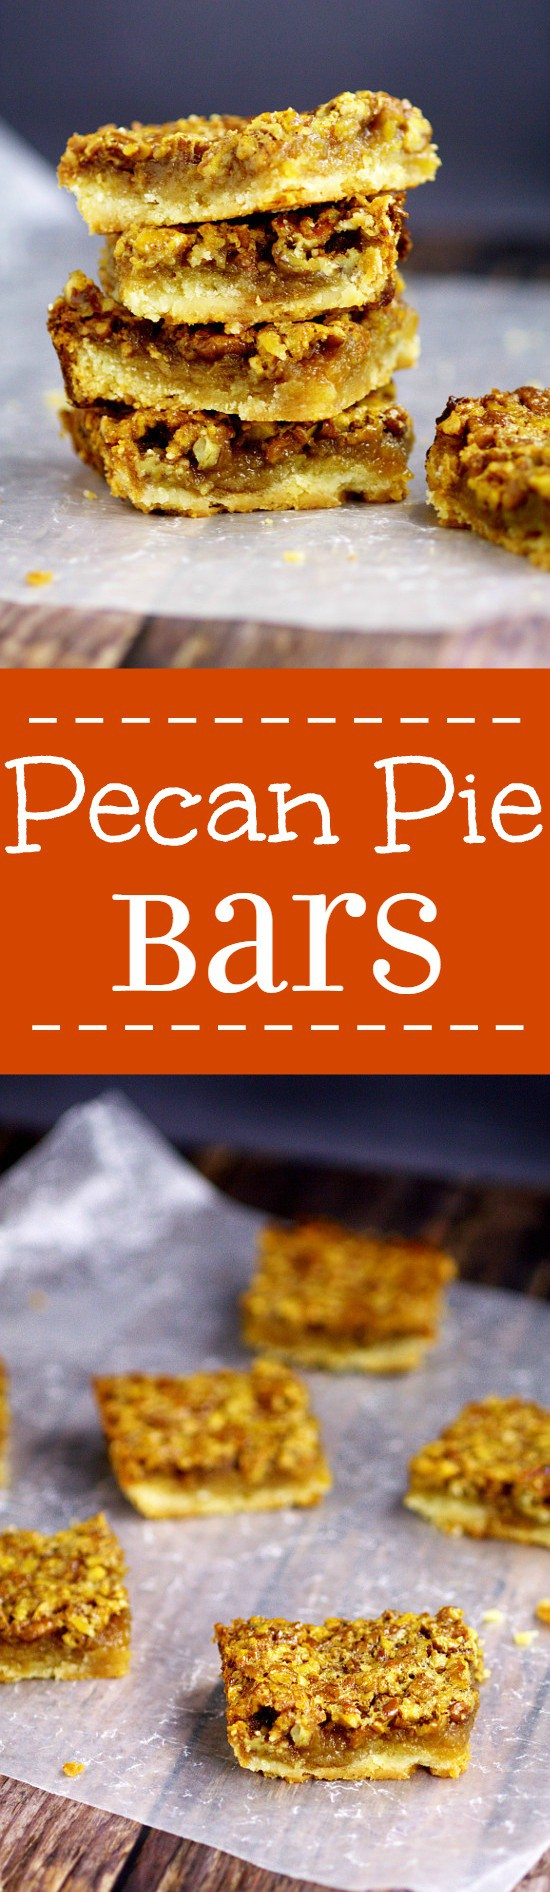 Southern Pecan Pie Bars recipe with a soft crust and classic pecan pie filling come together to make one sweet, gooey, heavenly dessert recipe that will be the highlight of your feast!  Pecan Pie Bars would be an amazing dessert recipe for Thanksgiving and Christmas too!